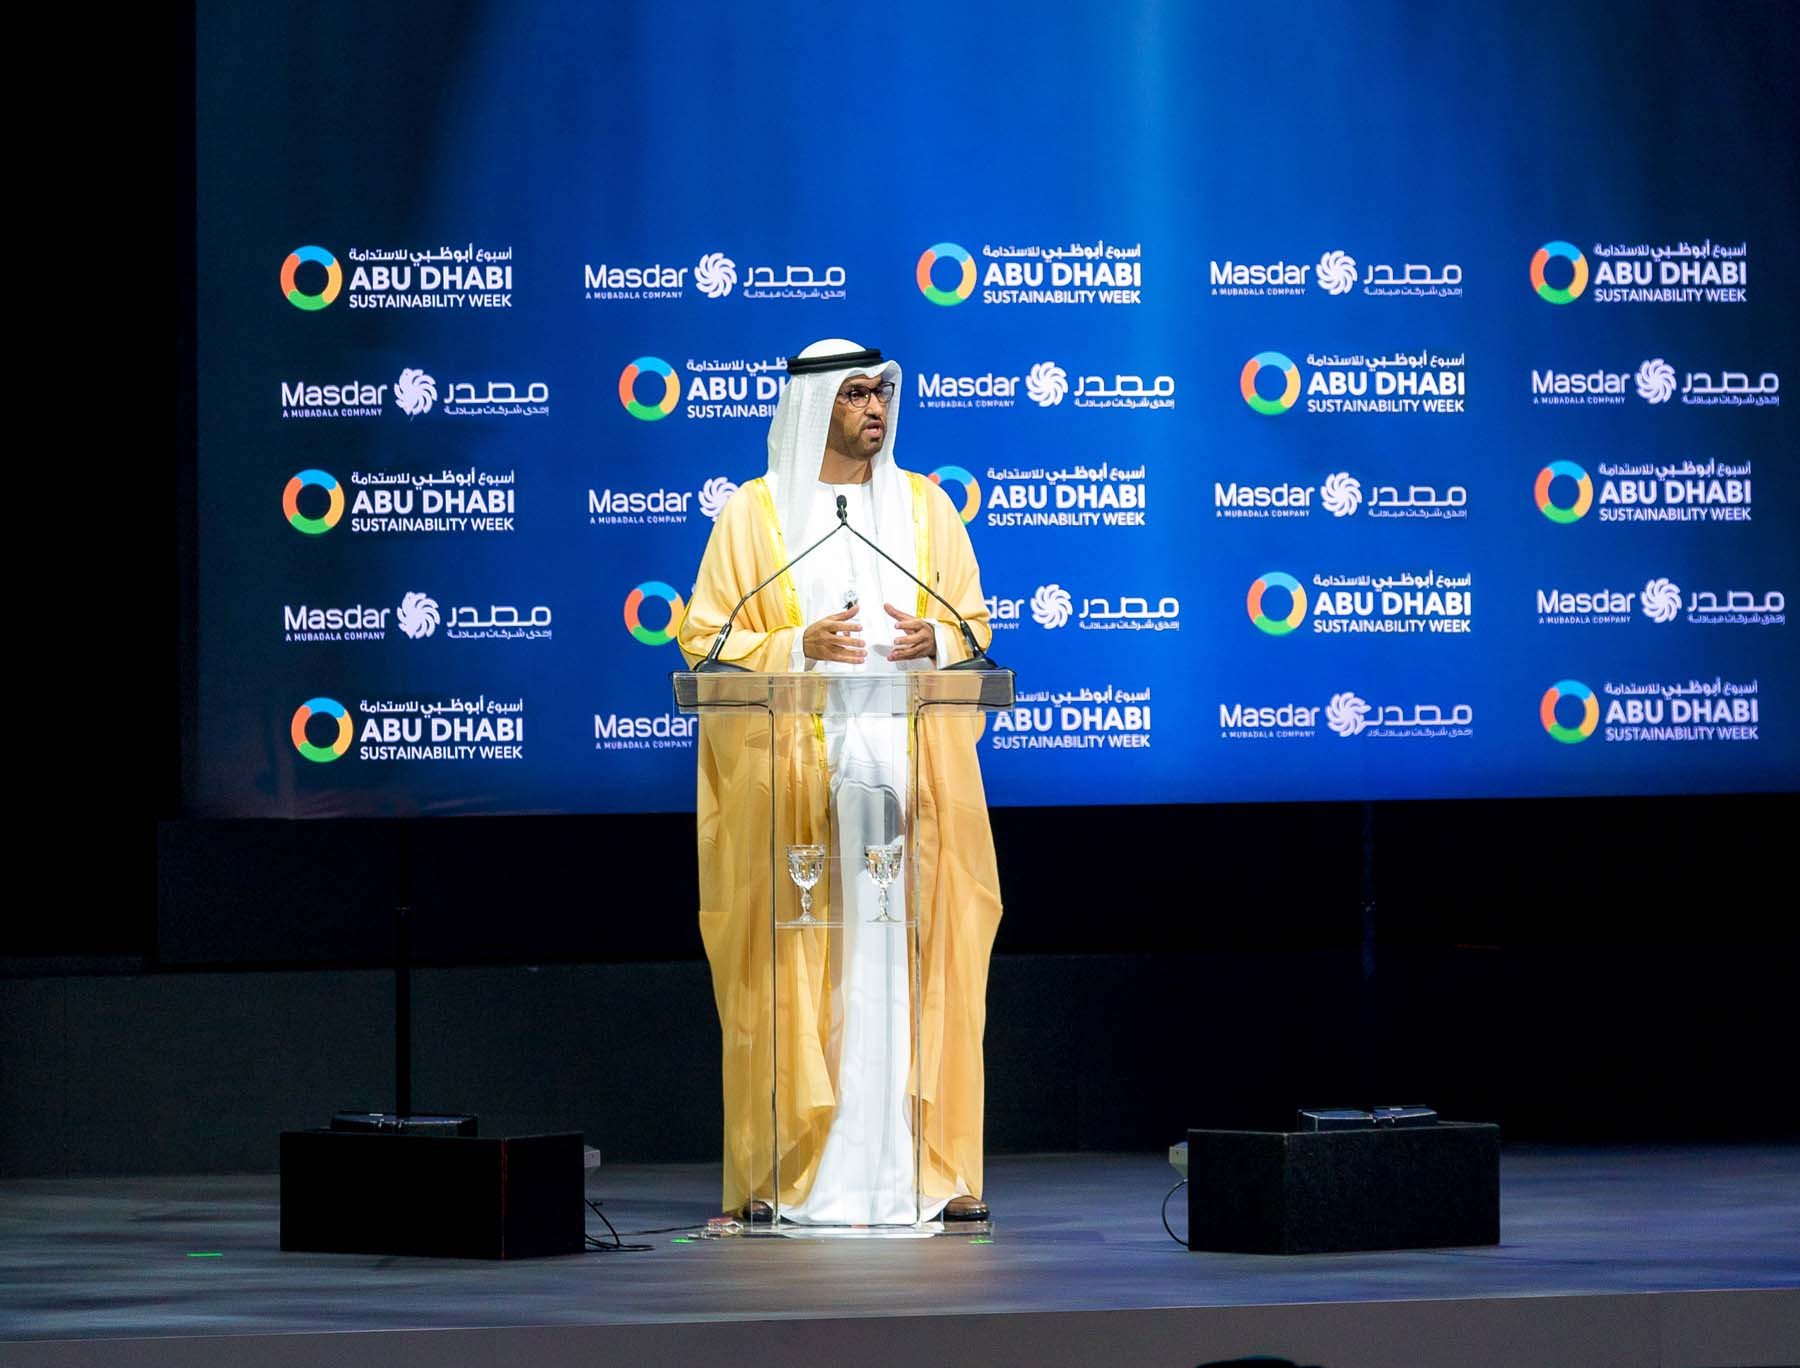 UAE Minister of State and Chairman of Masdar Sultan Ahmed  al-Jaber during the opening  ceremony of the World Future Energy Summit. (Masdar)